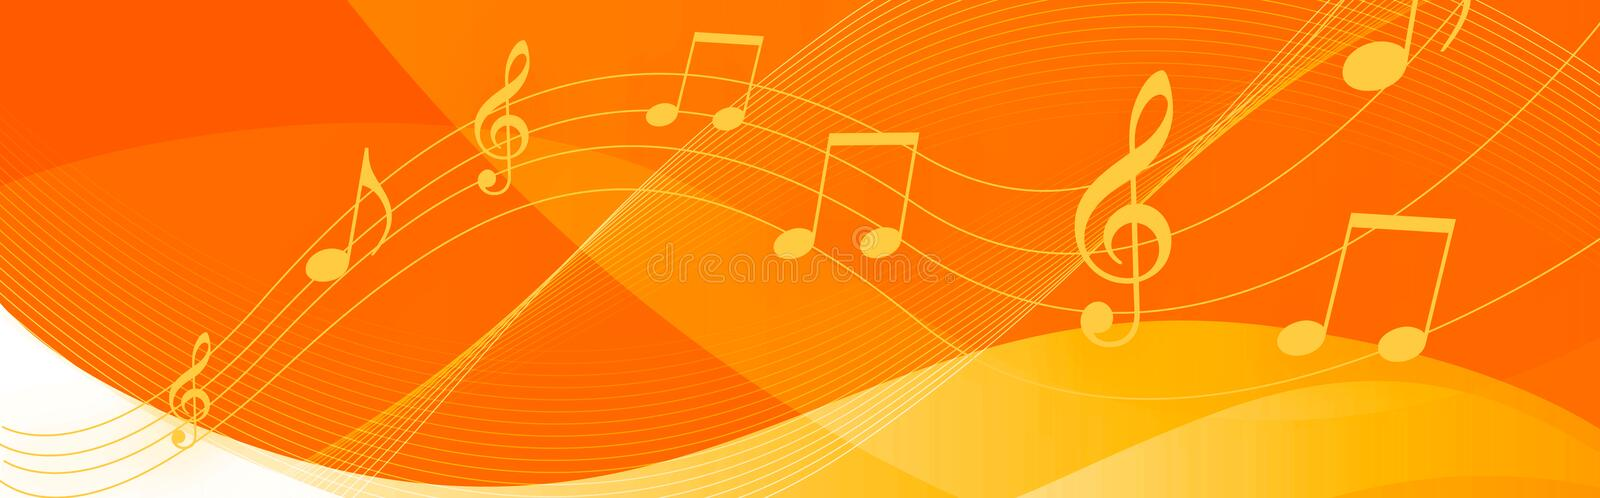 Download Music notes header stock illustration. Illustration of illustration - 12542612